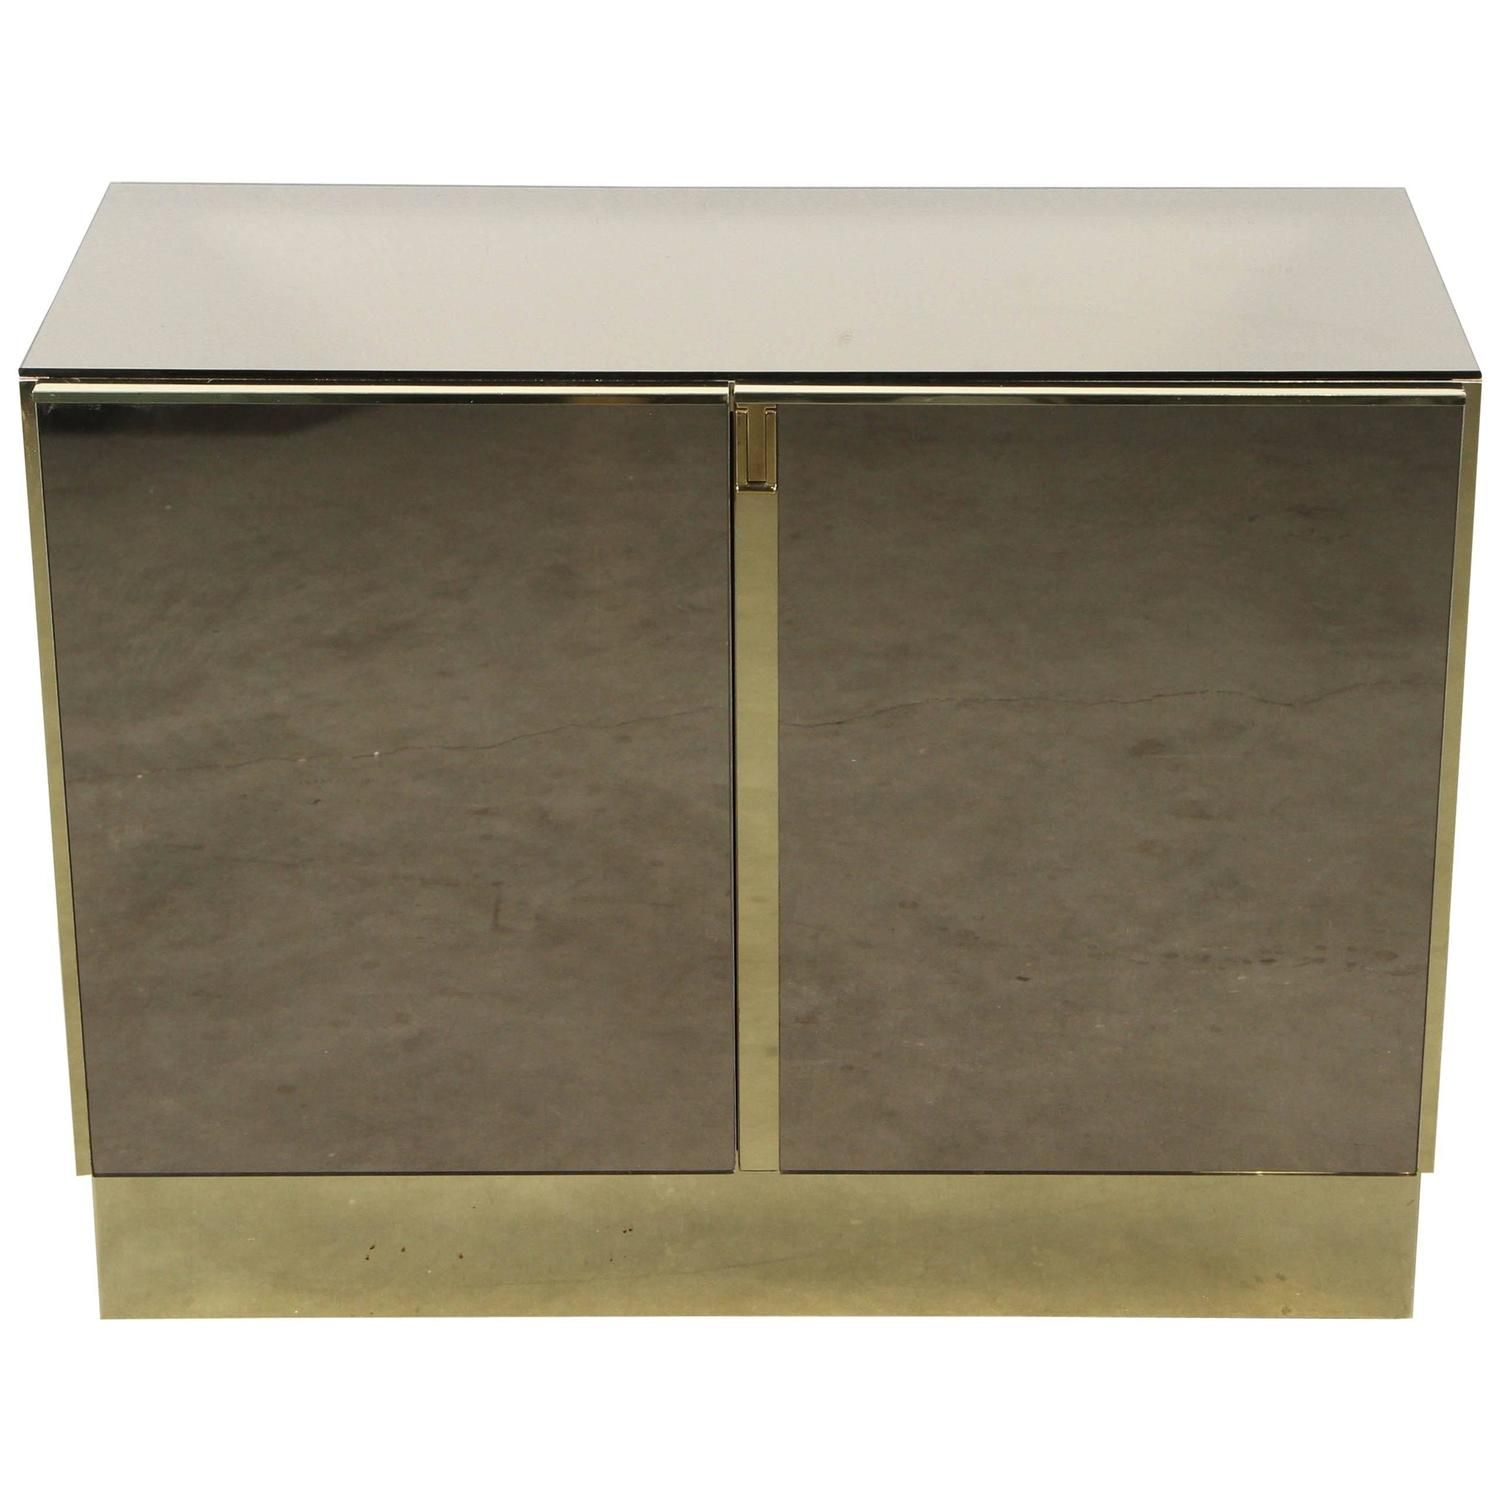 Chic Bronze Mirrored Cabinet By Ello | From A Unique Collection Of Antique  And Modern Cabinets At ...